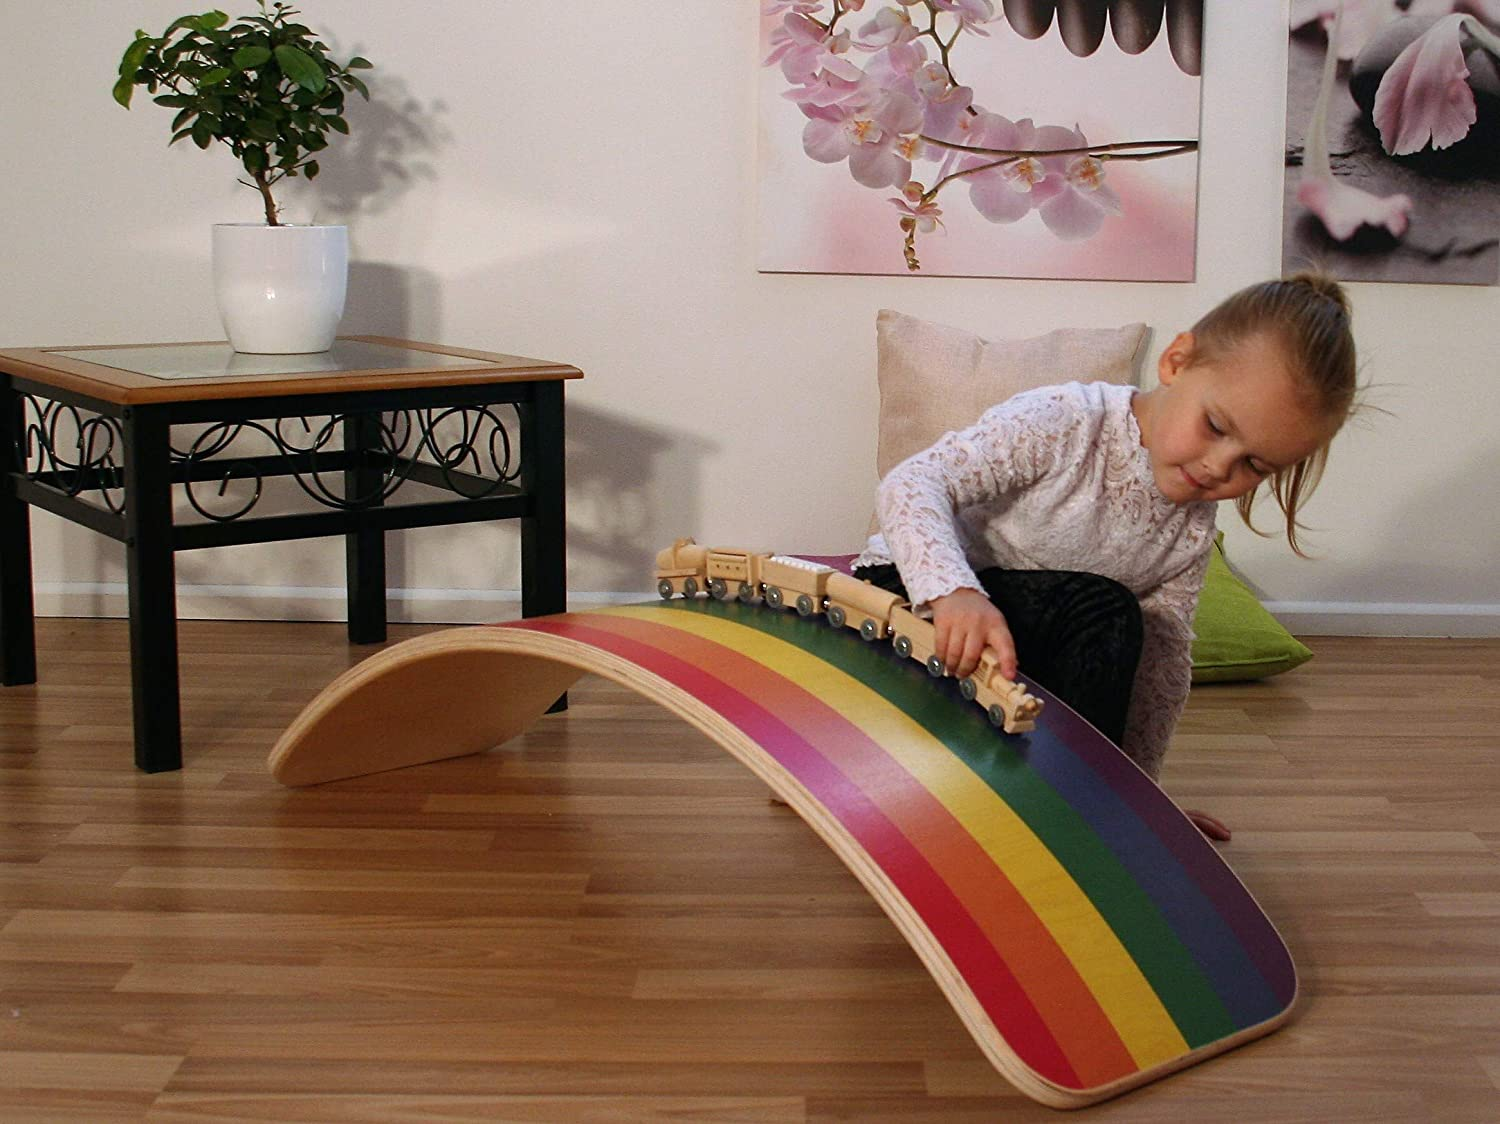 KateHaa Large Rainbow Balance Board Rockyboard Montessori toy Wooden toy Baby cradle Curvy board Kids toy Wooden board Wooden curvy board Waldorf board